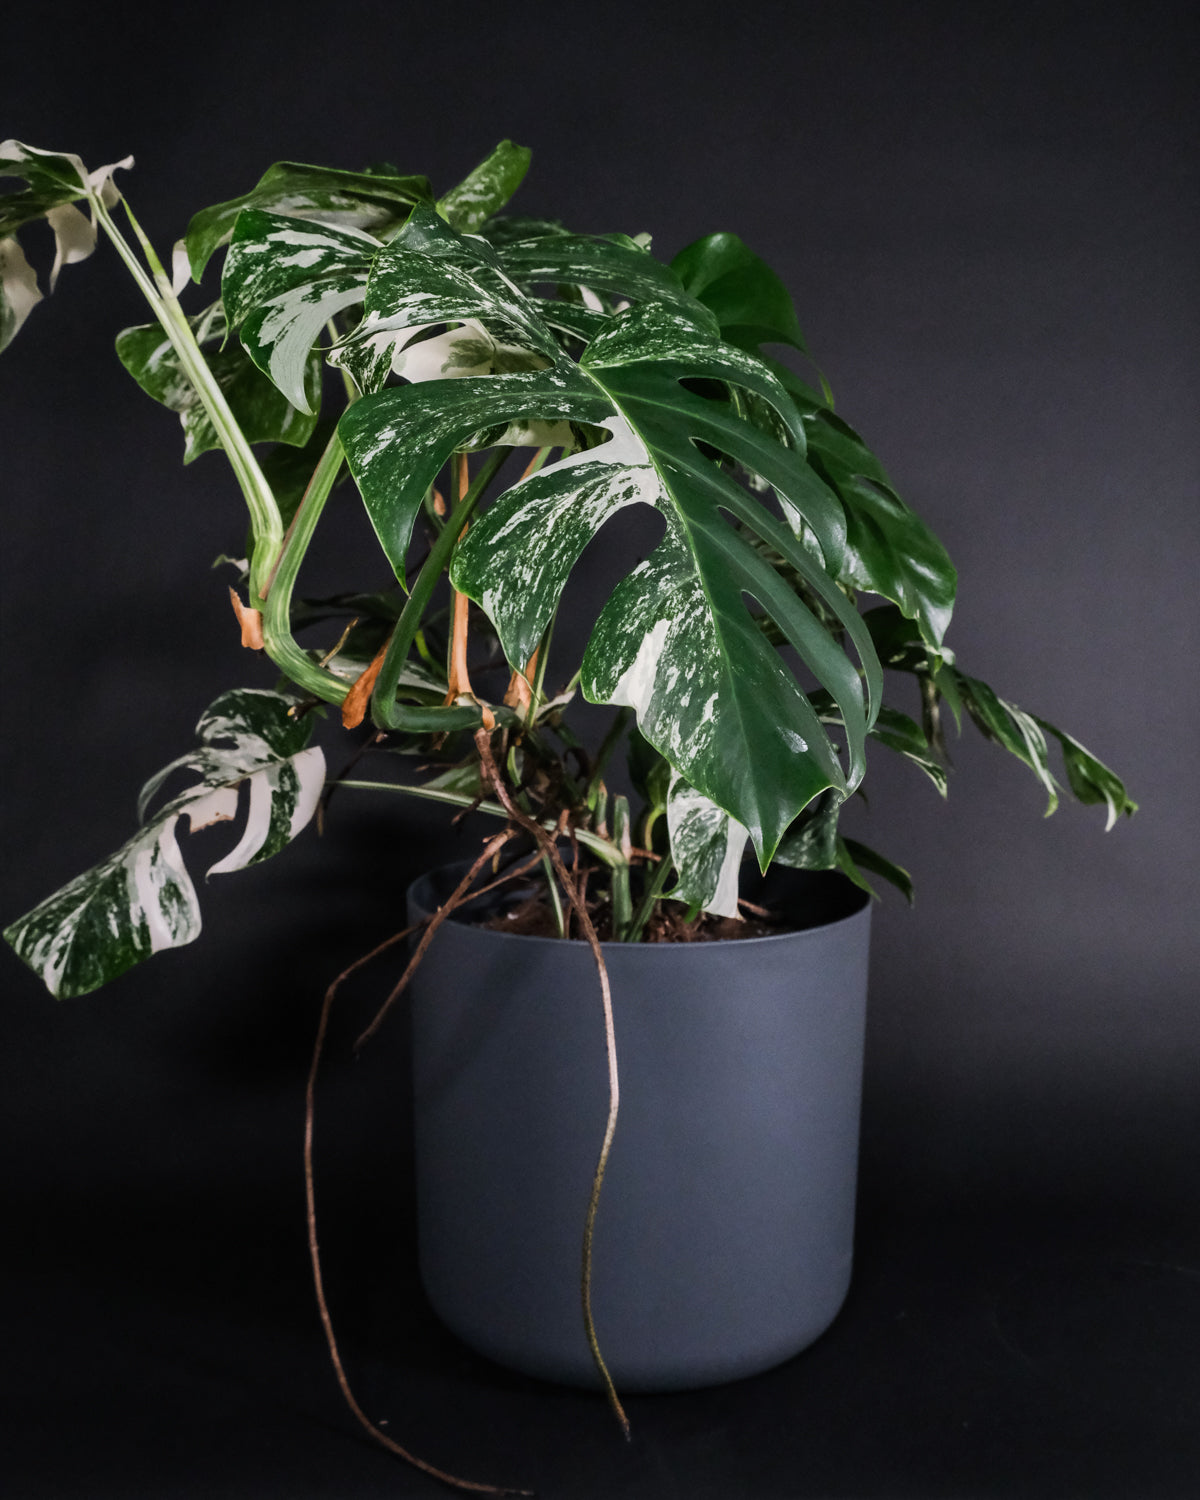 Grosse Monstera deliciosa variegata in einem anthrazitfarbenen Topf.